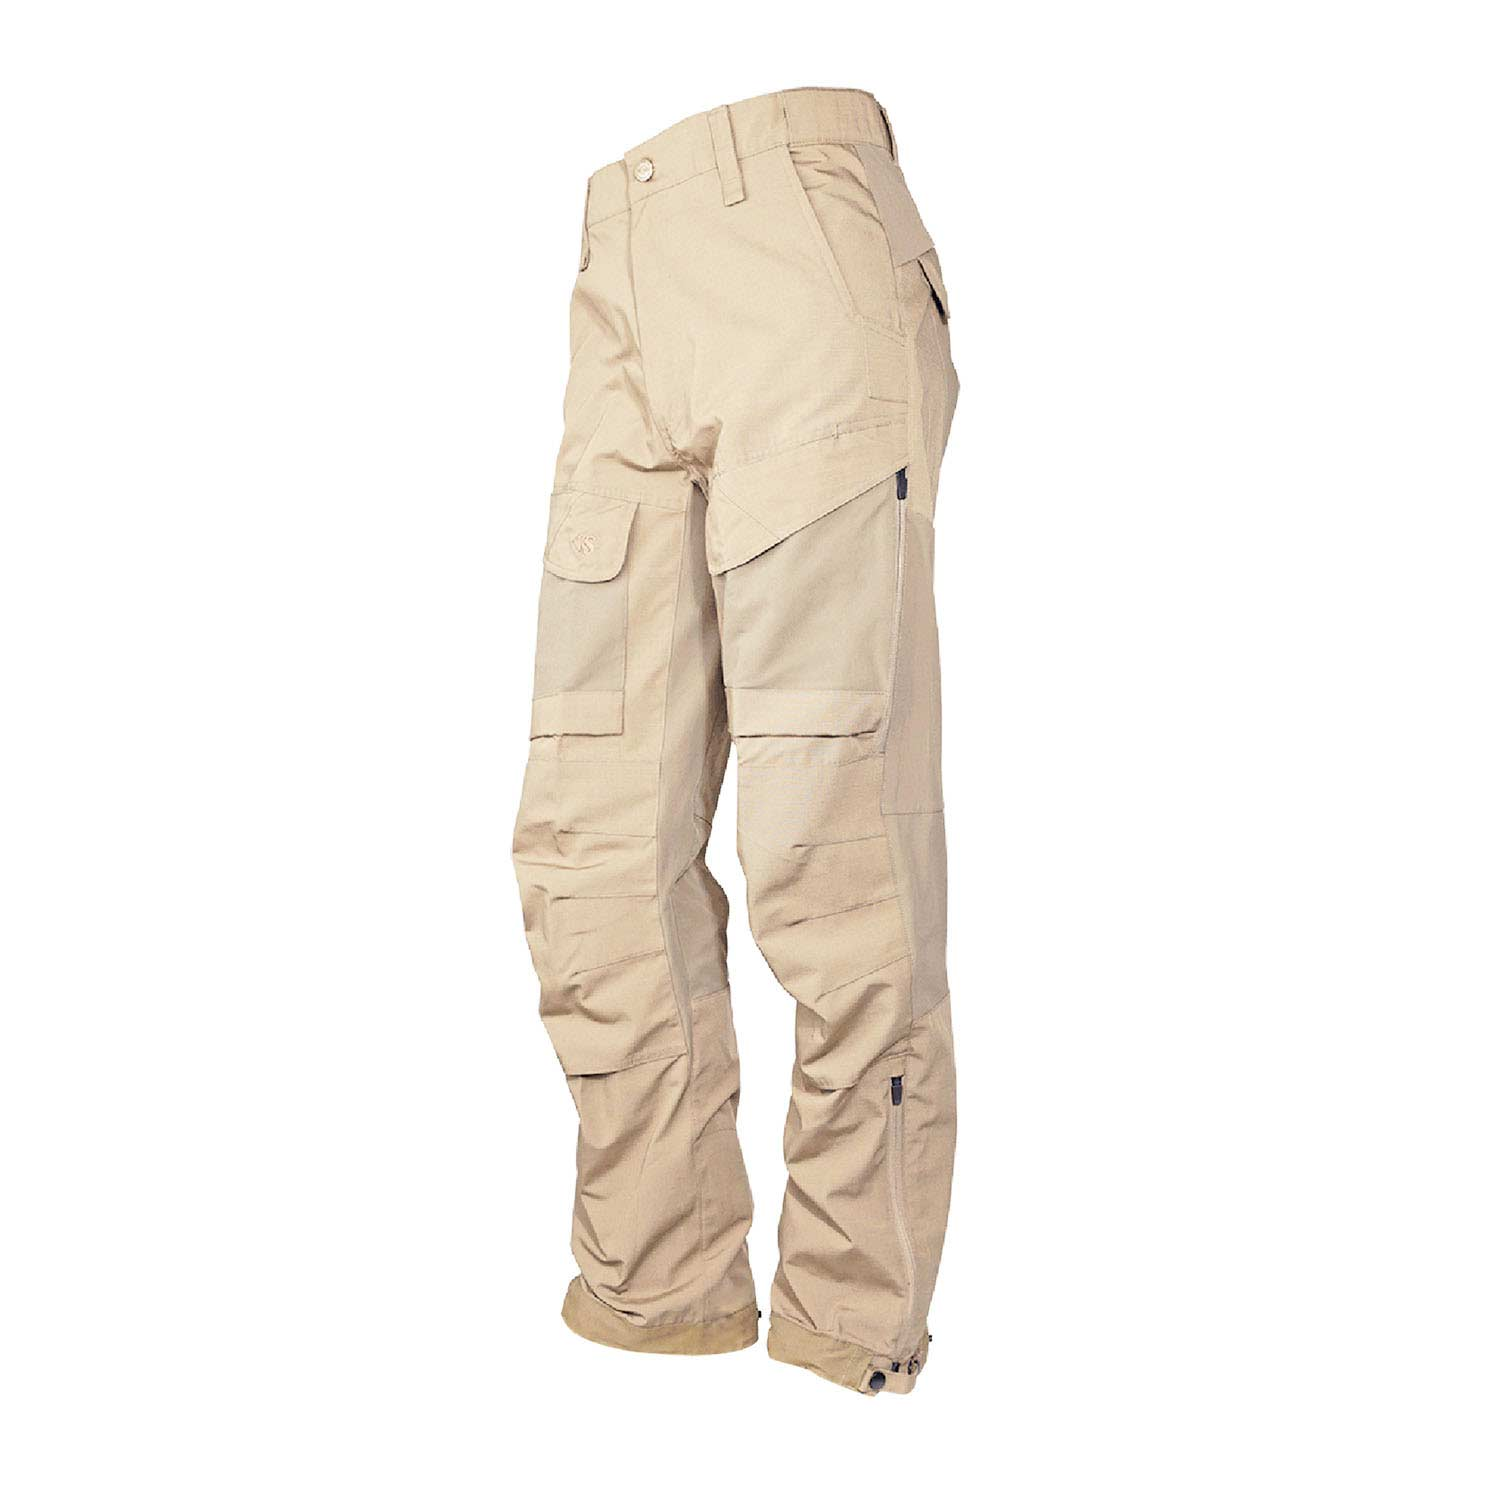 TRU-SPEC 24-7 Series 24-7 Xpedition Pants